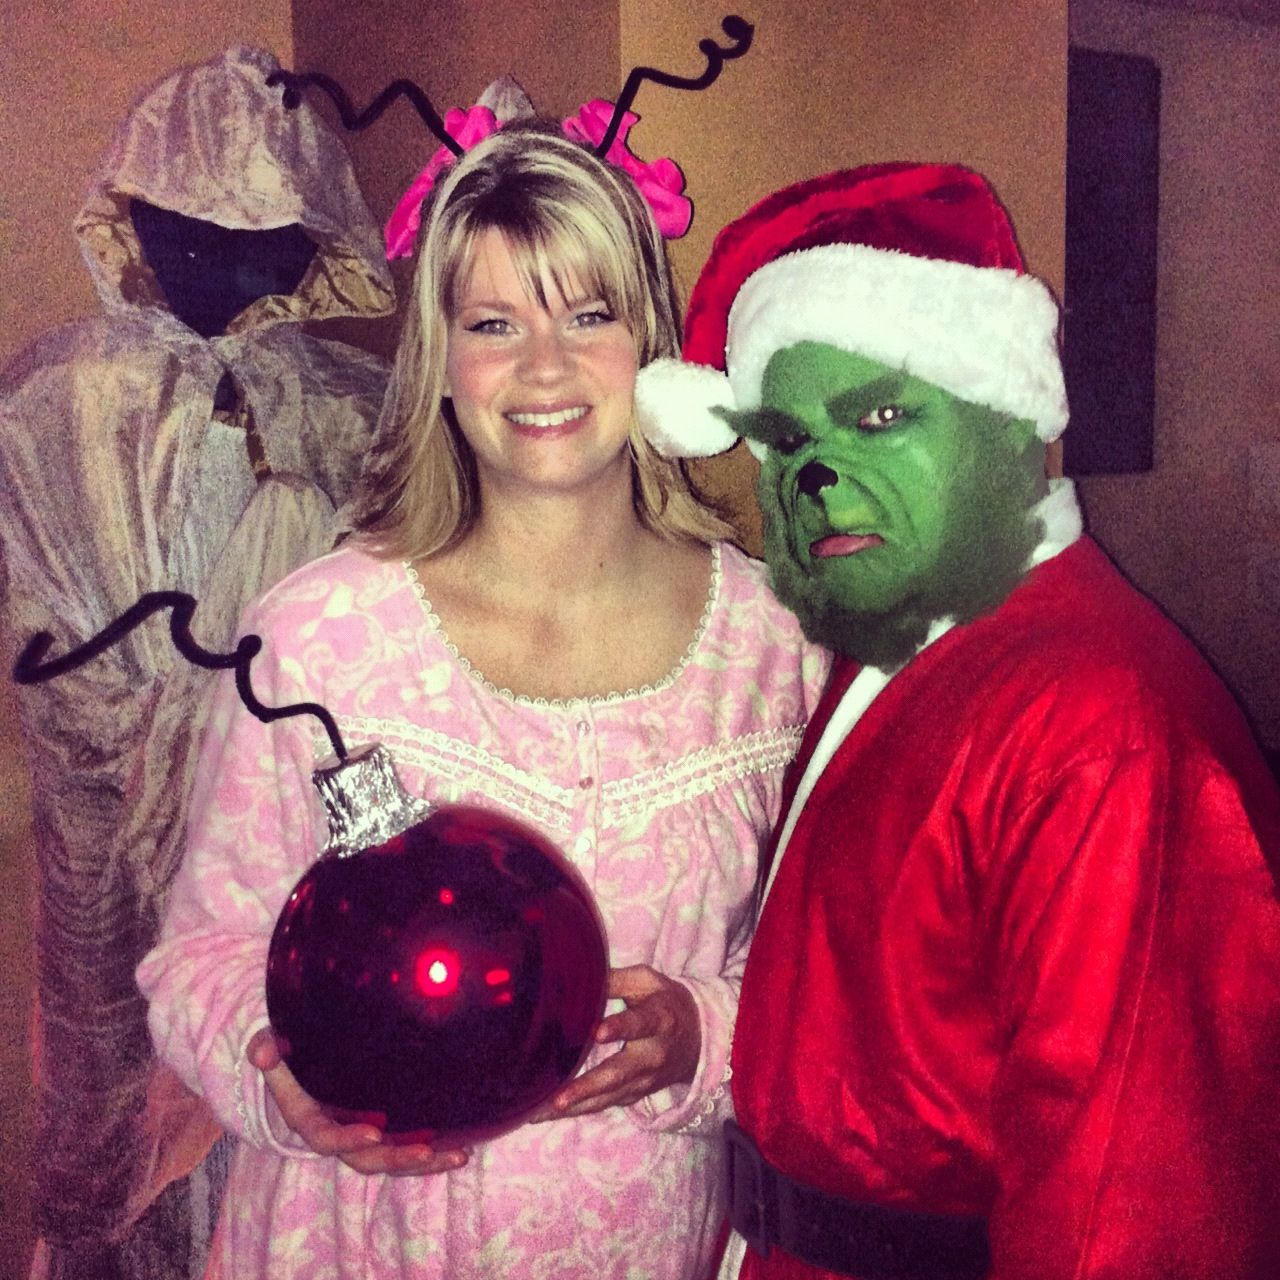 The Grinch & Cindy Lou Who!!!! Totally home made, totally awesome!!